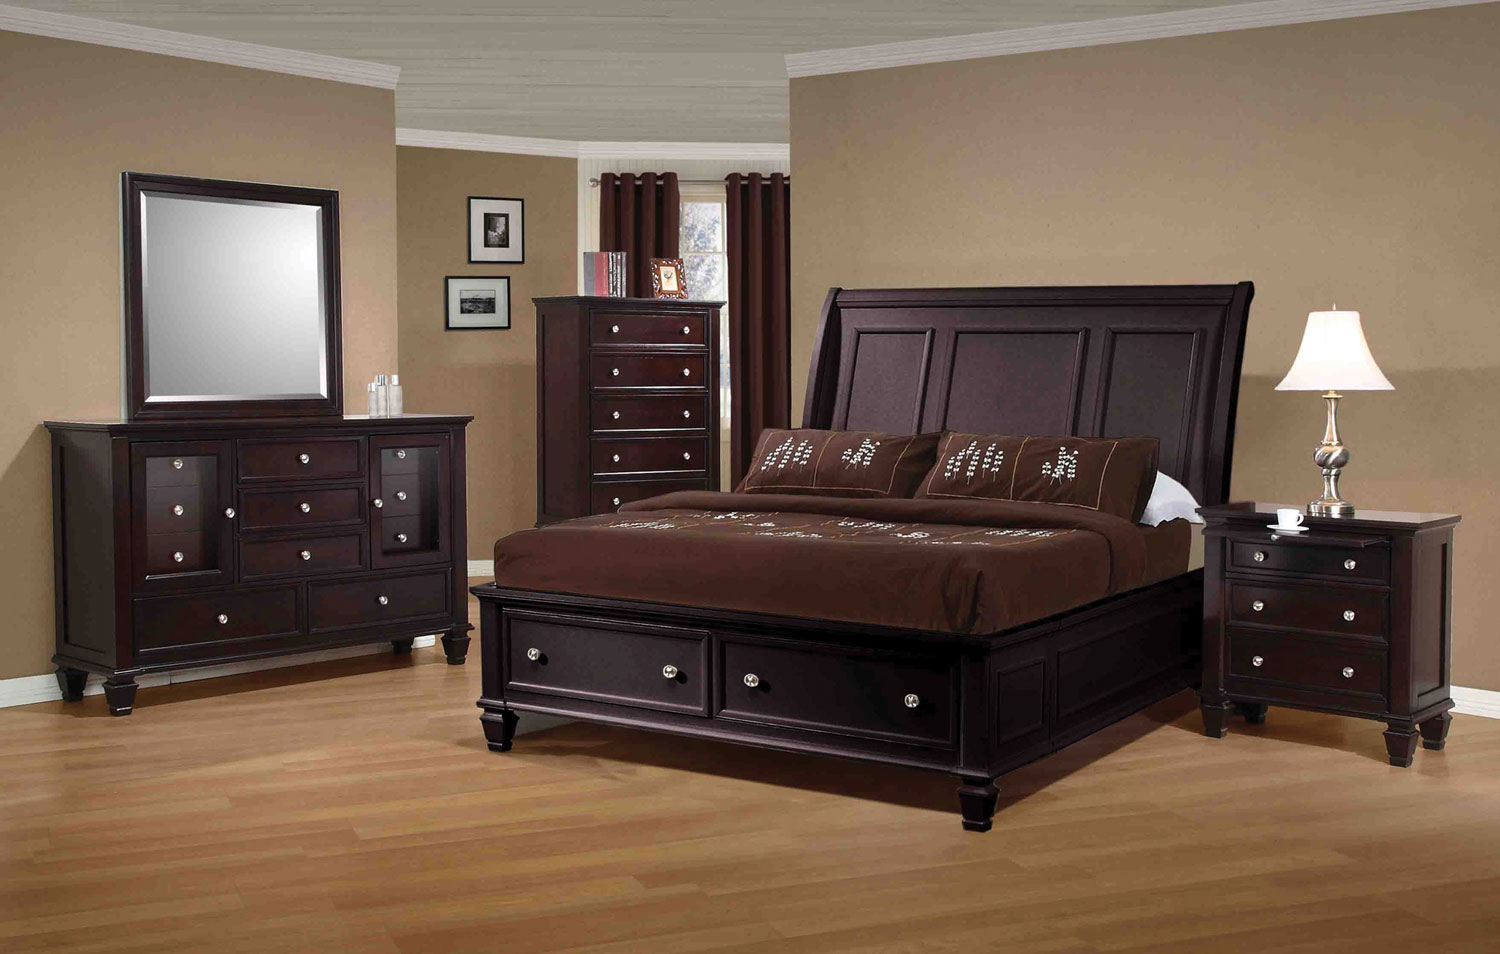 coaster sandy beach bedroom set cappuccino 201990 bedset